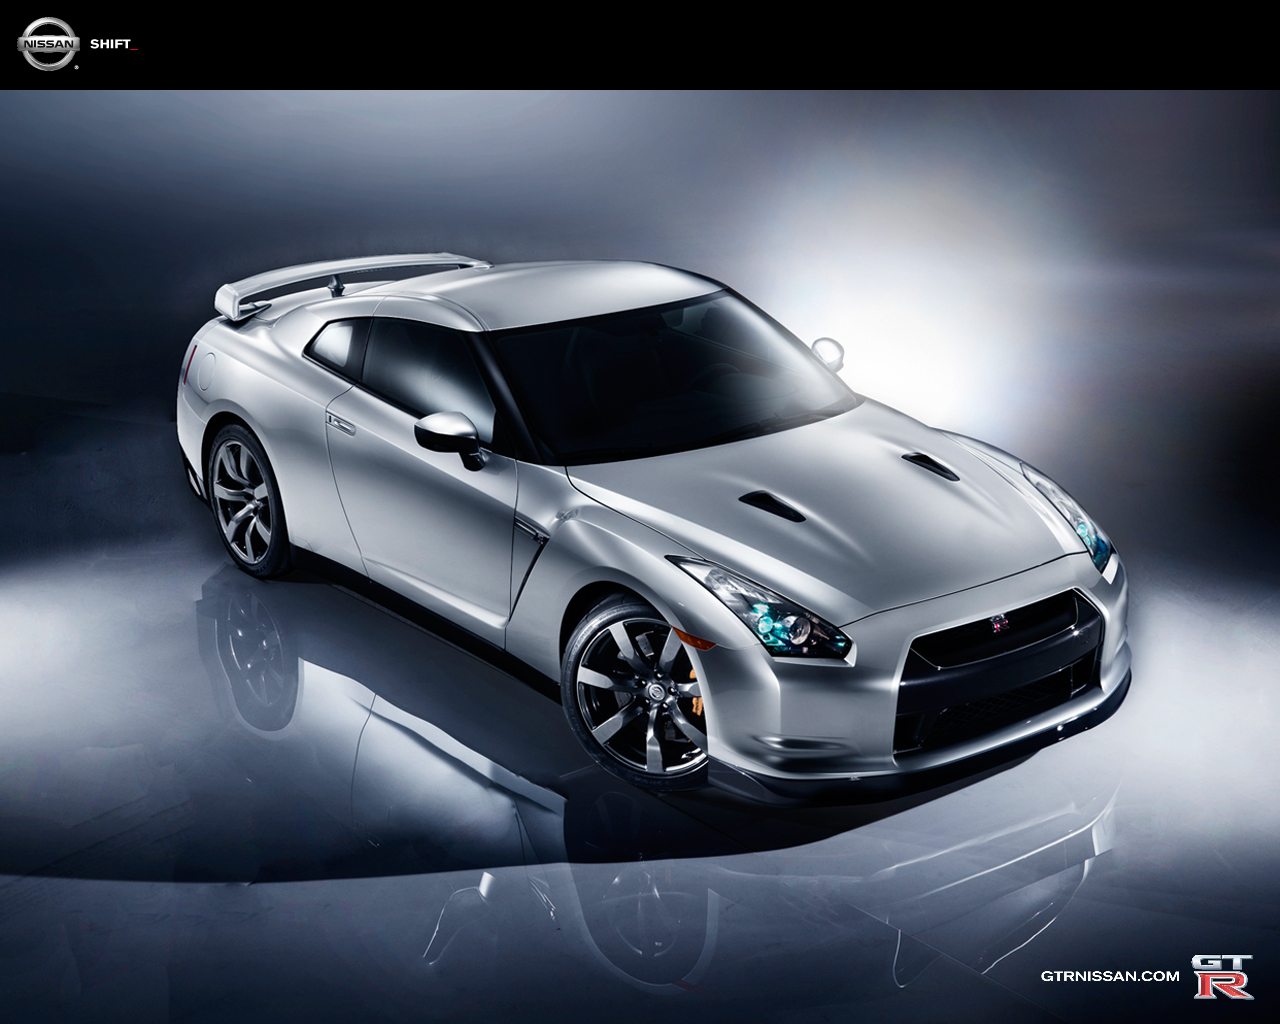 nissan skyline gtr best japanese sport cars futuristic cars future. Black Bedroom Furniture Sets. Home Design Ideas